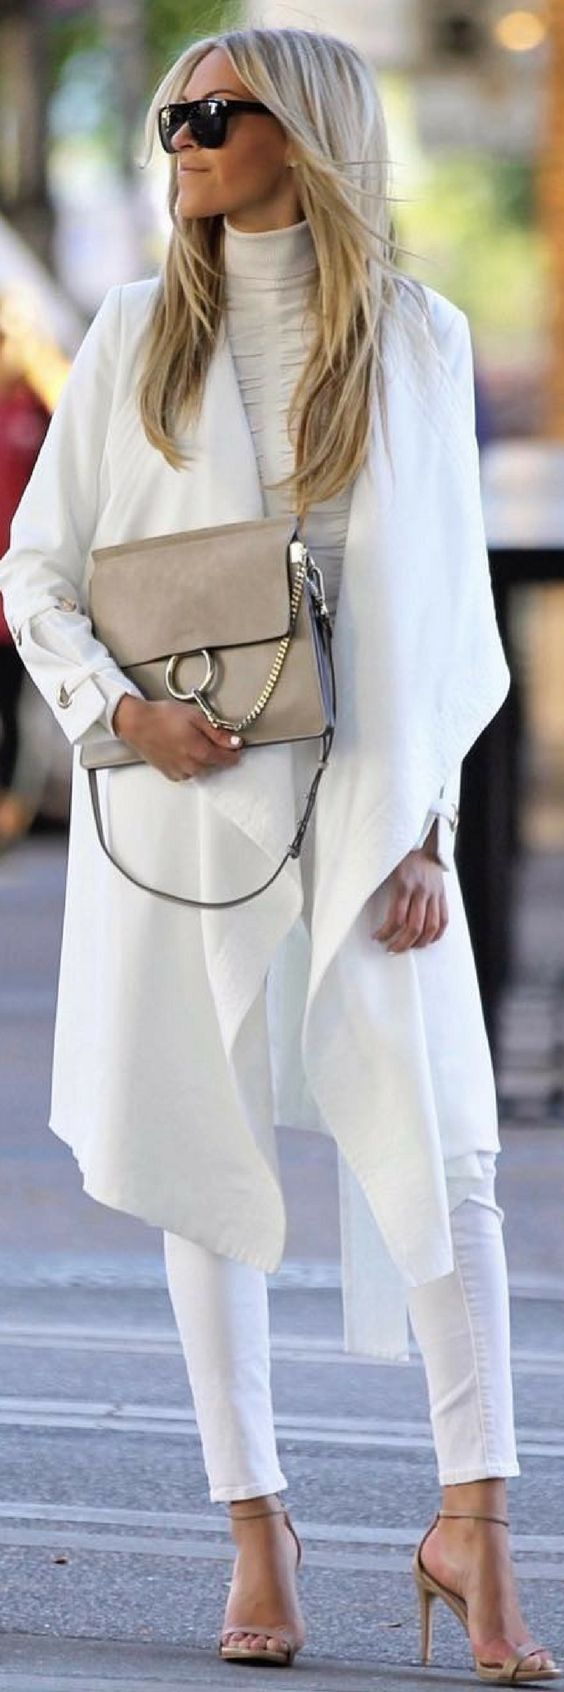 All Shades Of White - How To Style By Macy Stucke http://ecstasymodels.blog/2017/10/29/shades-white-style-macy-stucke/